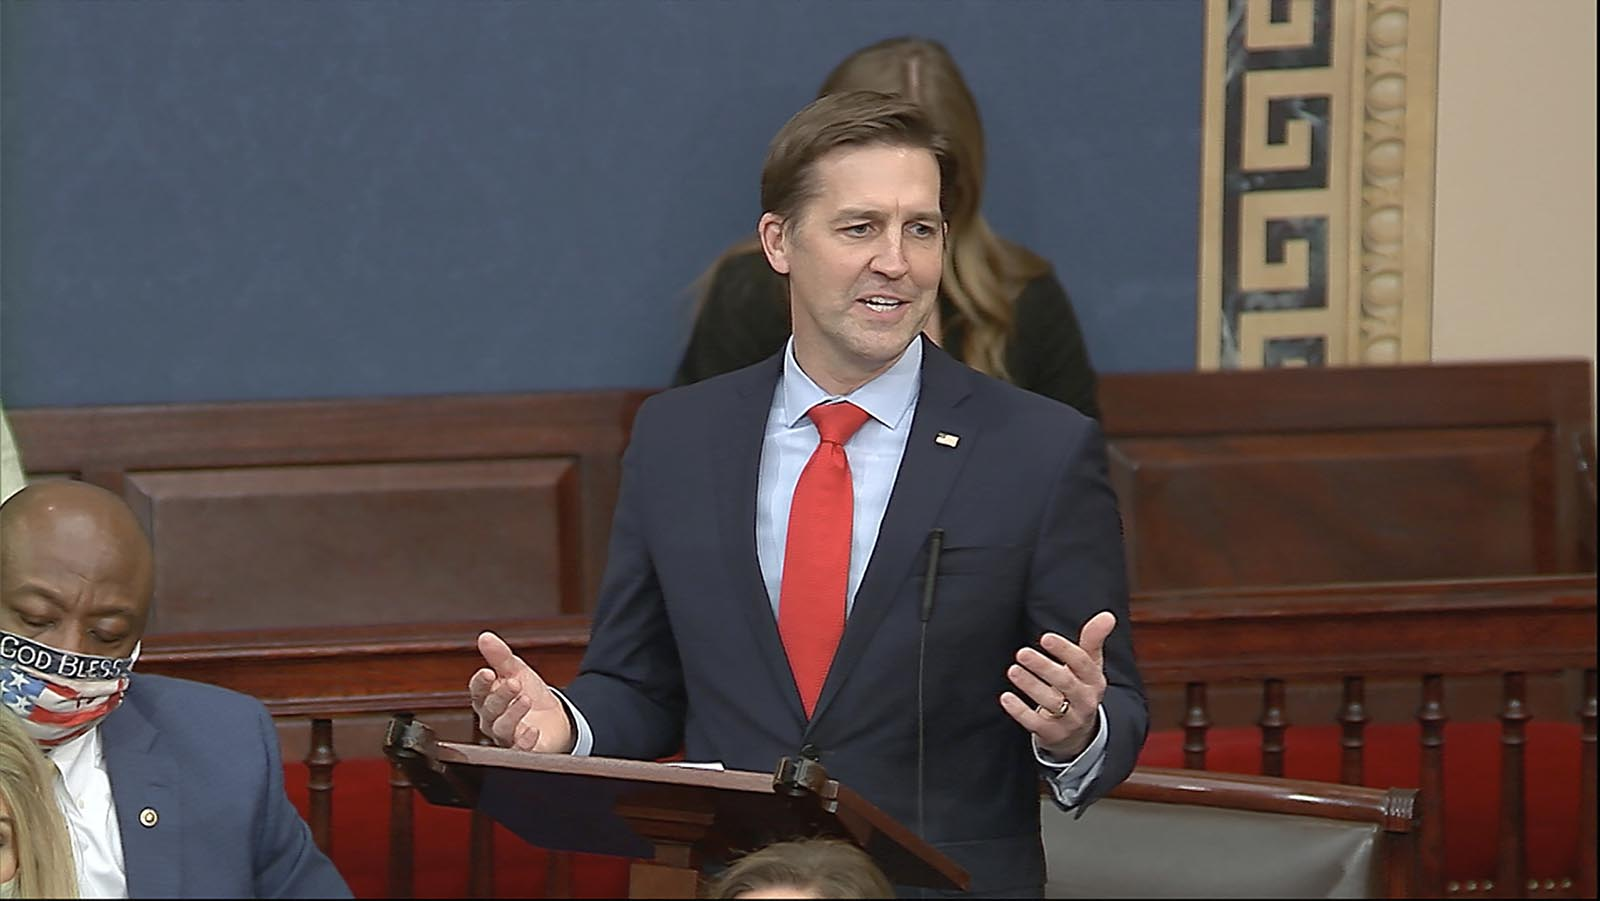 In this image from video, Sen. Ben Sasse, R-Neb, speaks as the Senate reconvenes after protesters stormed into the U.S. Capitol on Wednesday, January 6.